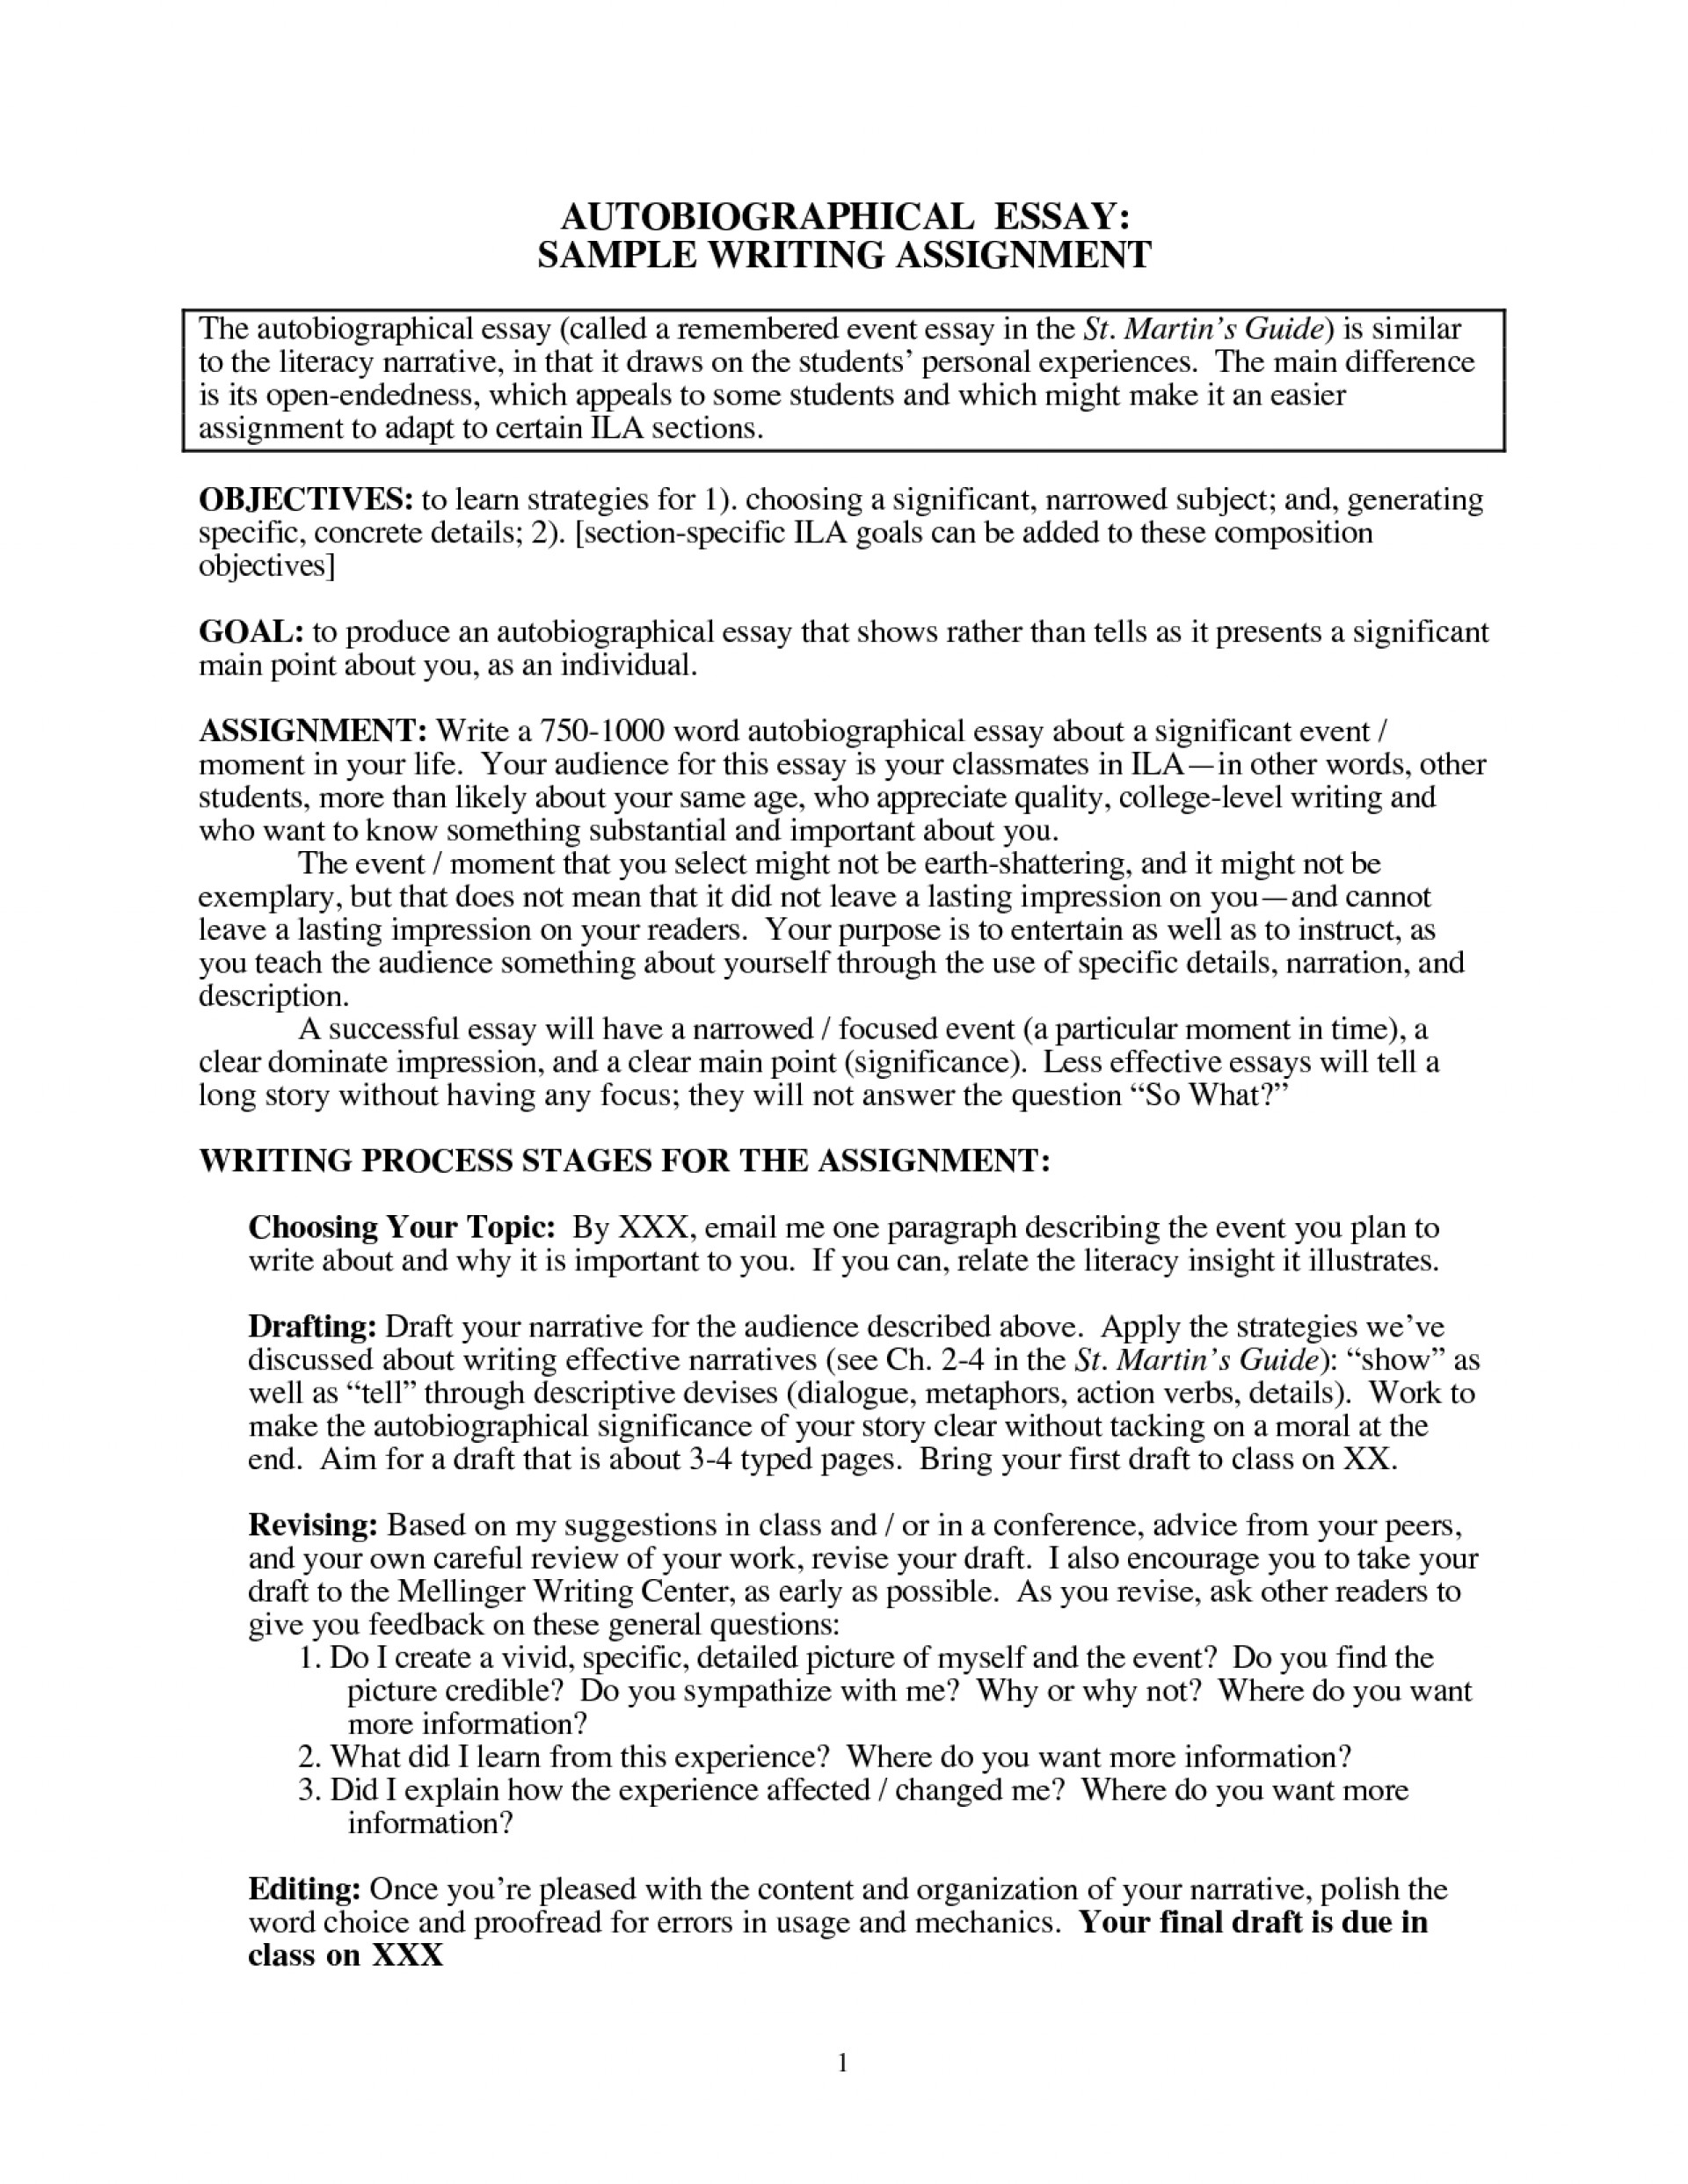 007 Essay Example Sample Autobiographic Sketch College Autobiography Knowing Imagine For Awesome How To Write Examples Good Incredible A Biographical Bibliography Biography About An Author Pdf 1920